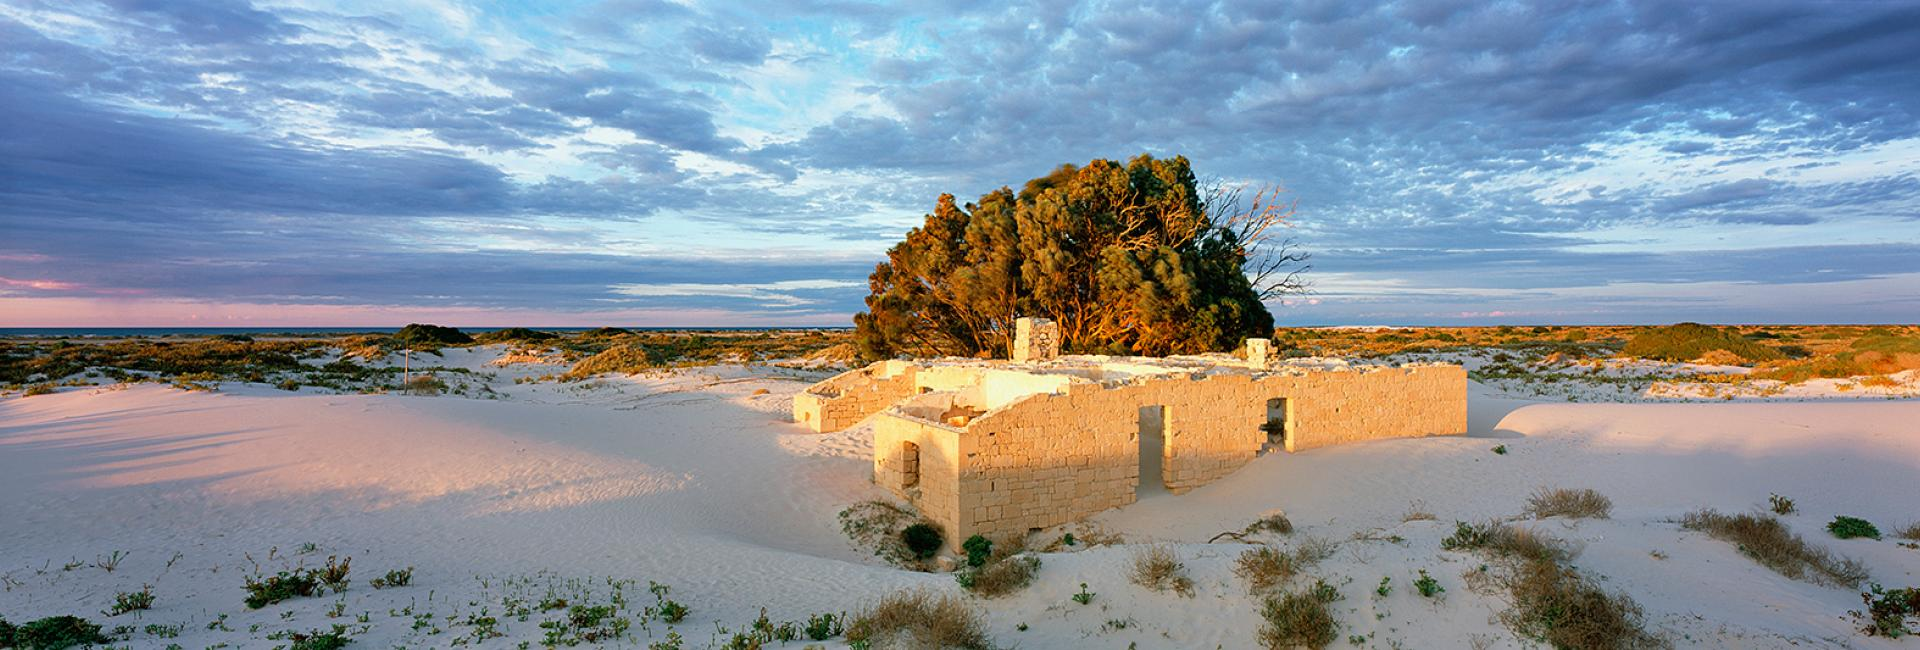 Eucla Old Telegraph Station ruins